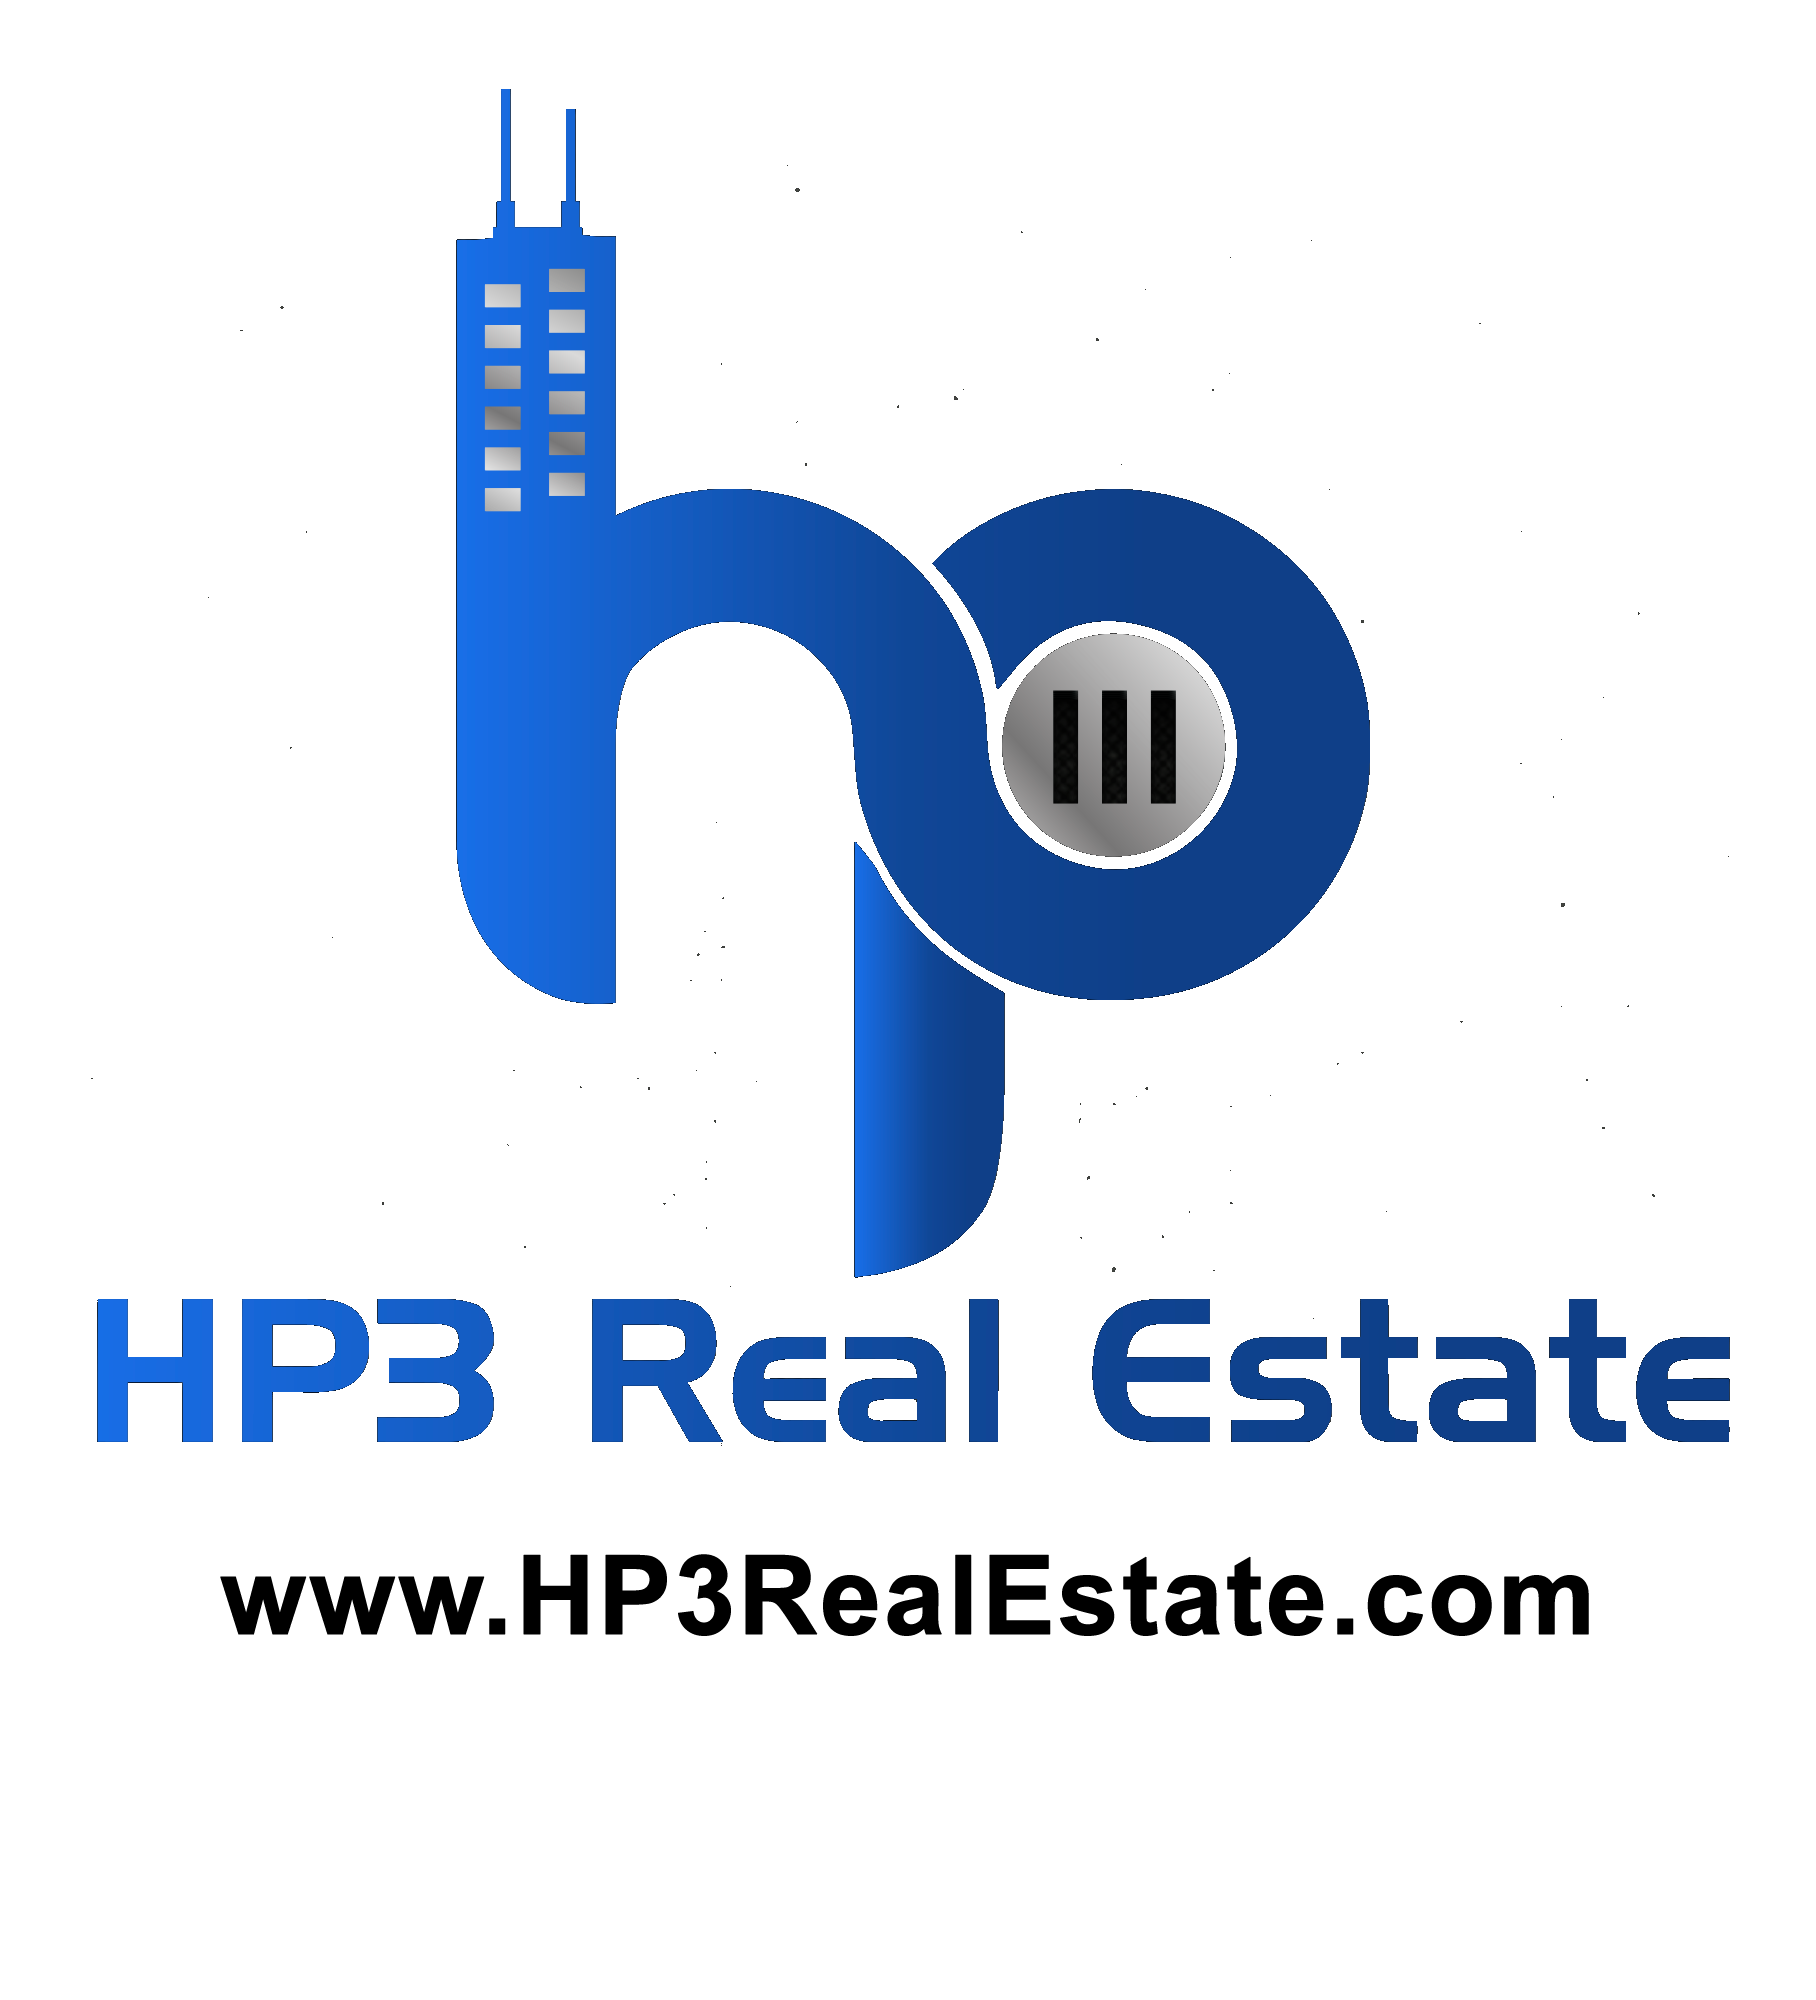 hp3realestate